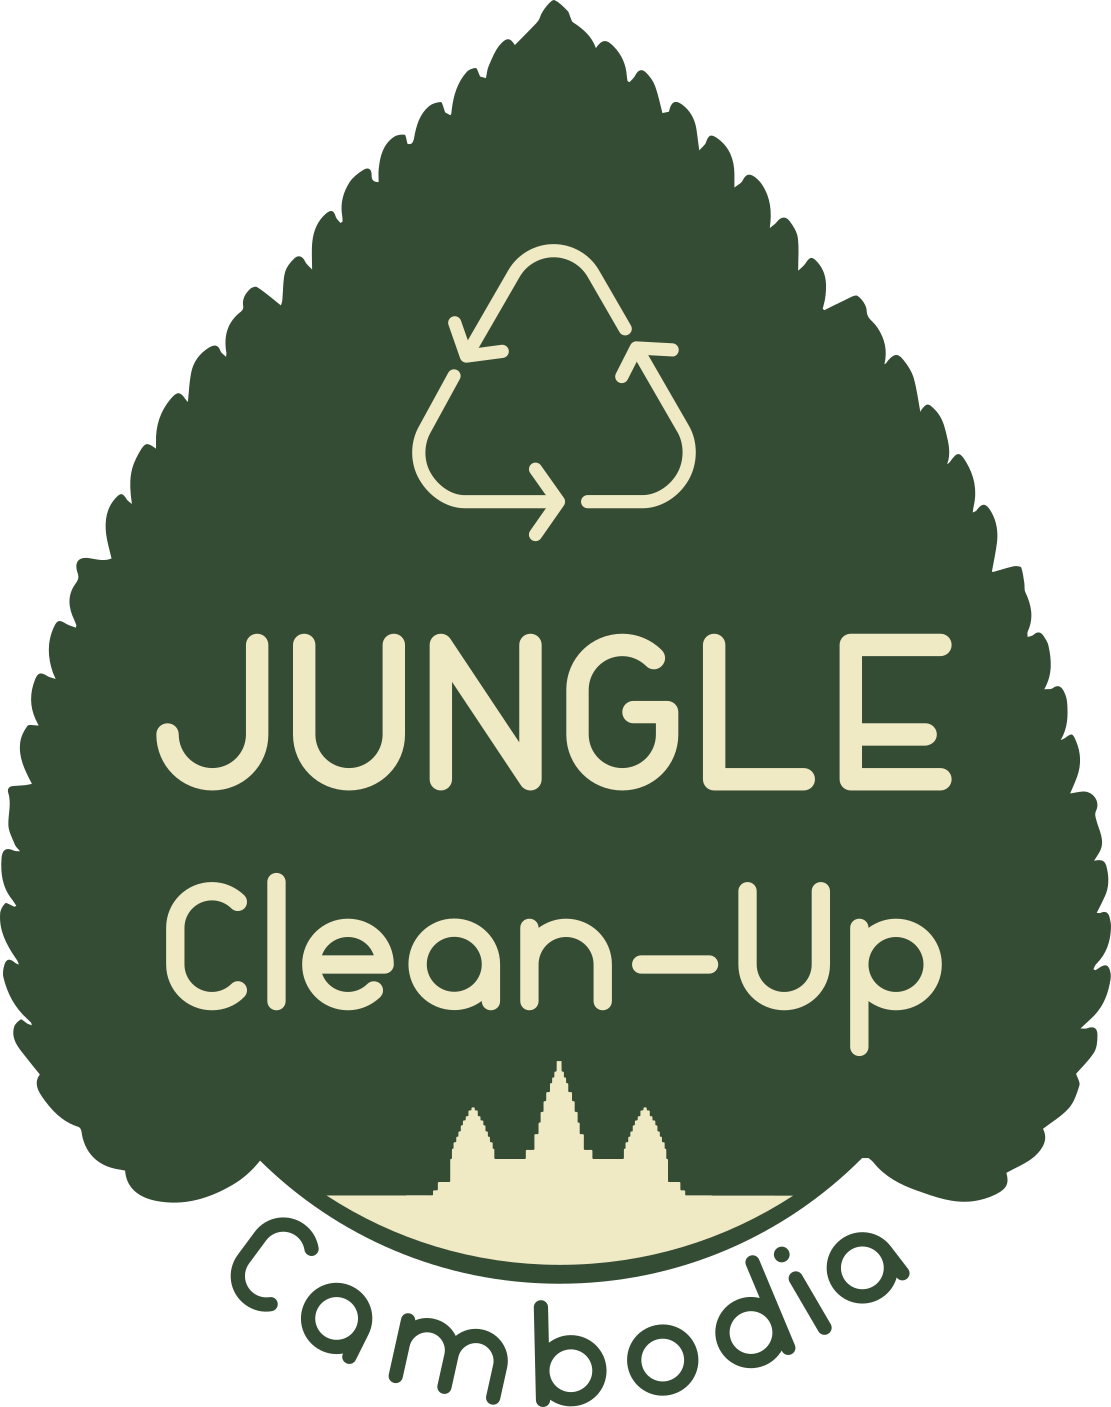 cleanup-logo.png